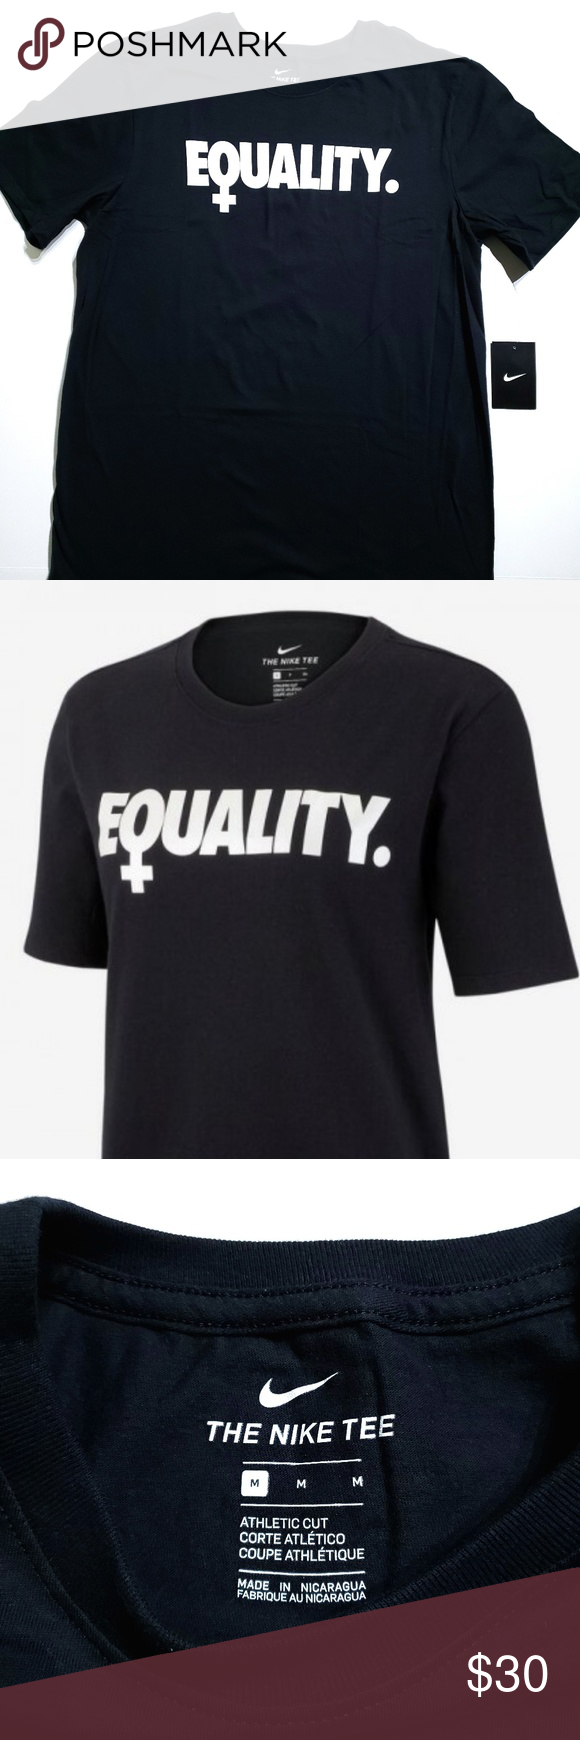 8315ecf08e Nike Equality International Womens Day T-Shirt EQUALITY The Nike ...